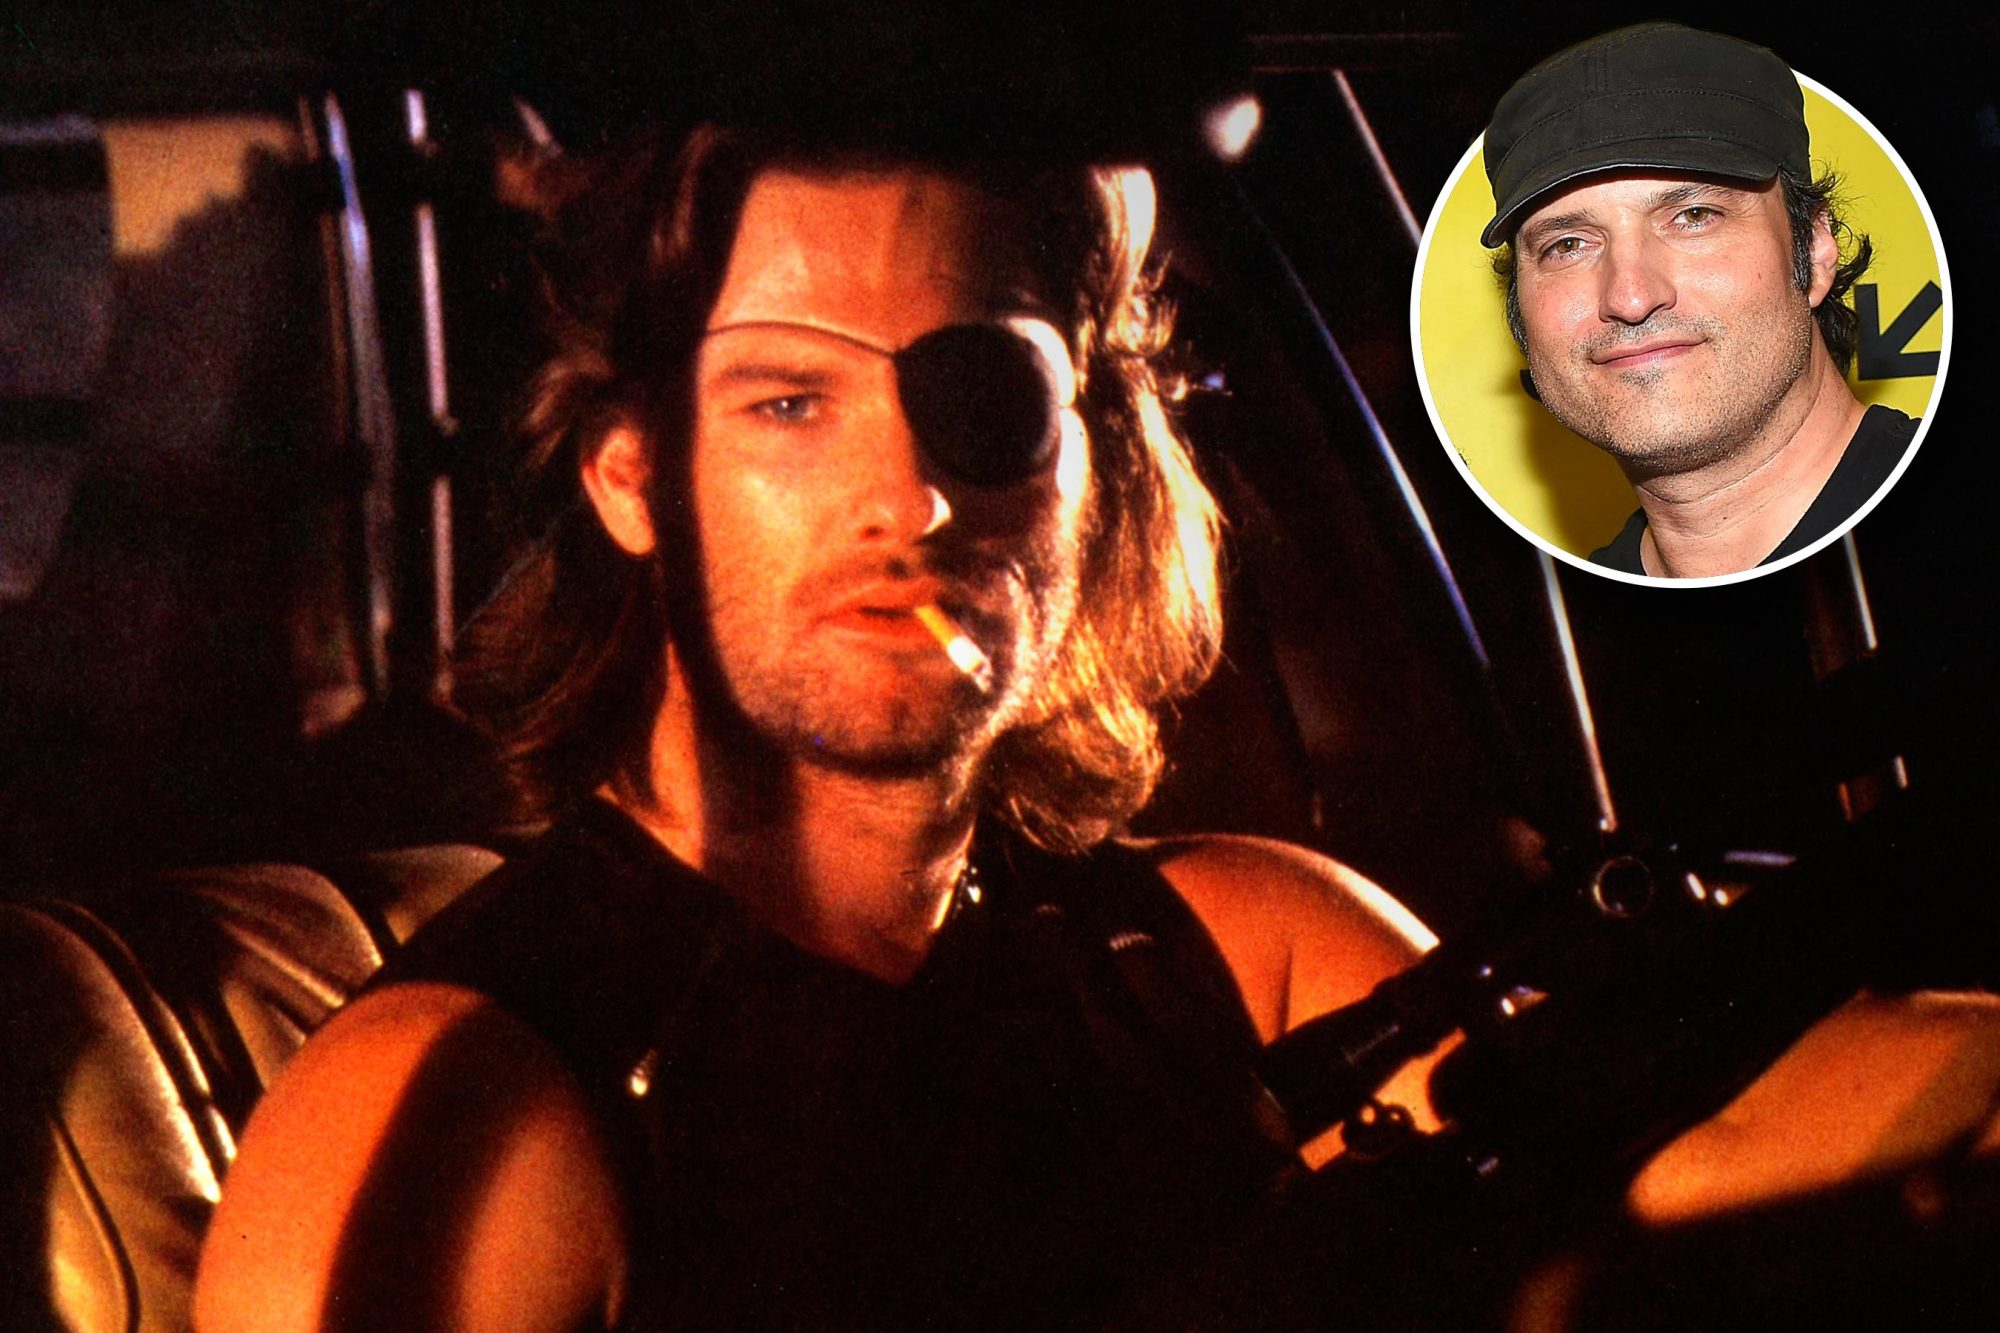 Robert-Rodriguez-Escape-From-New-York